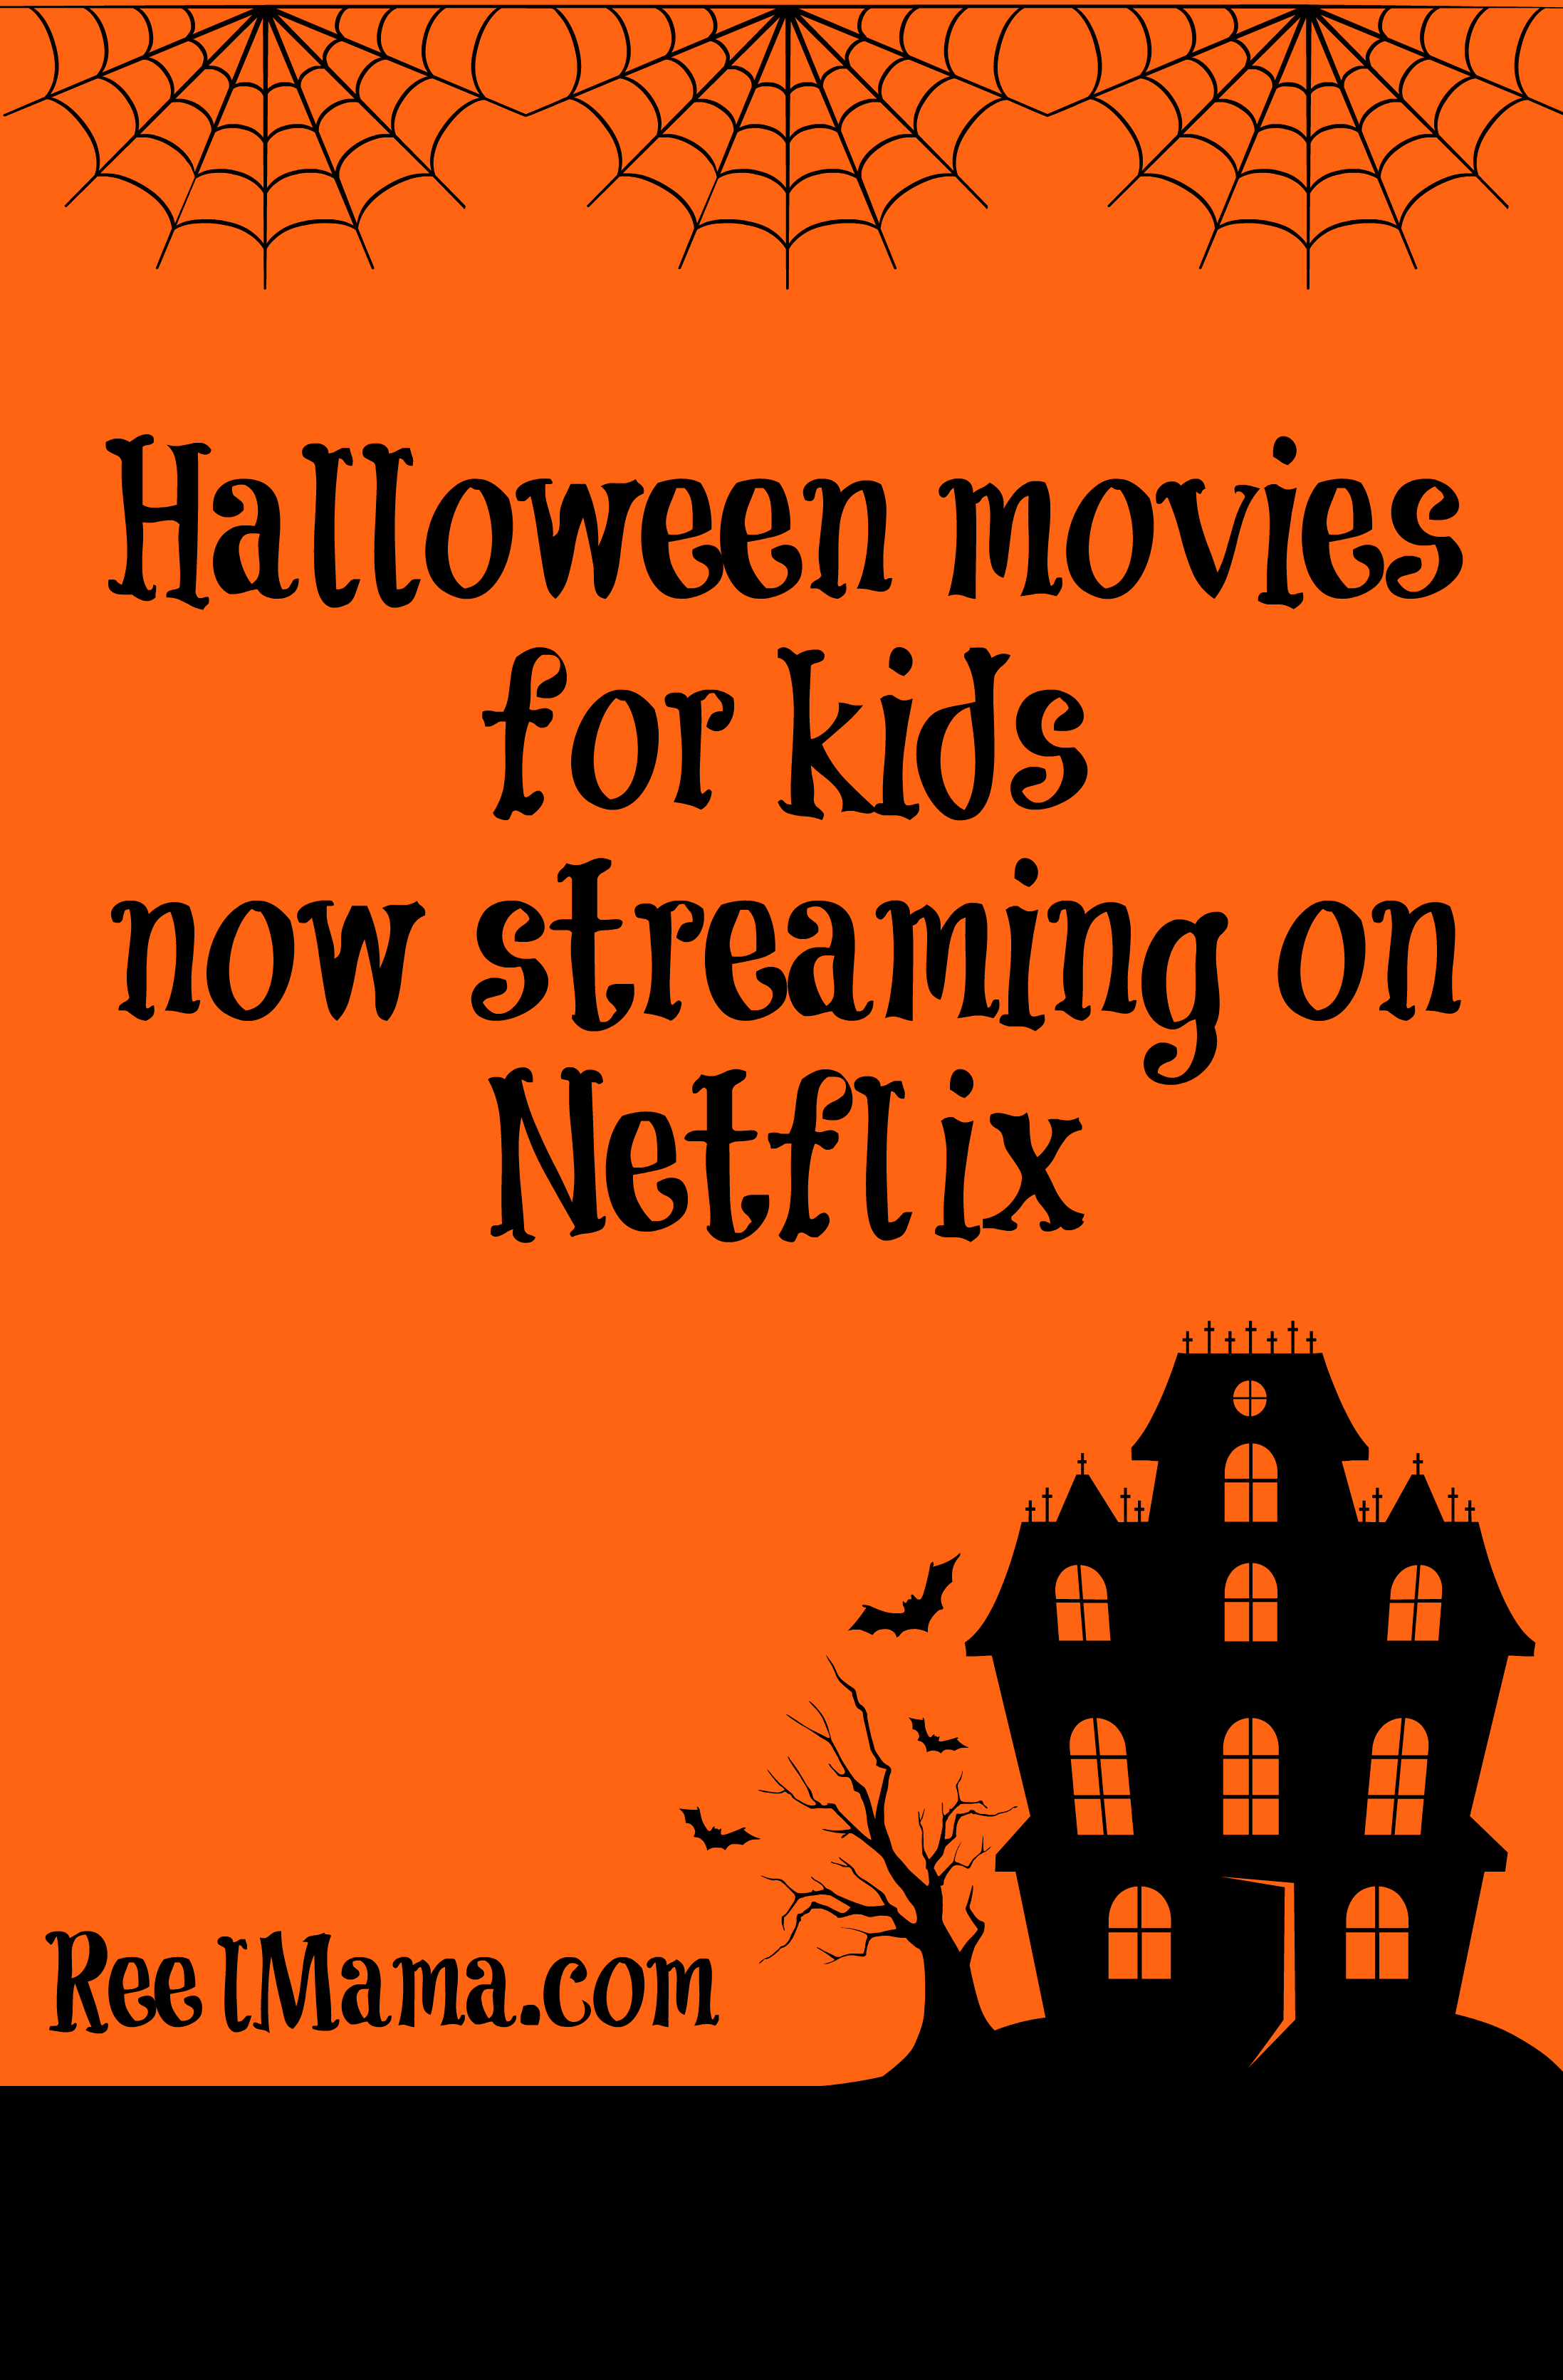 check out the halloween movies and shows for kids now streaming on netflix